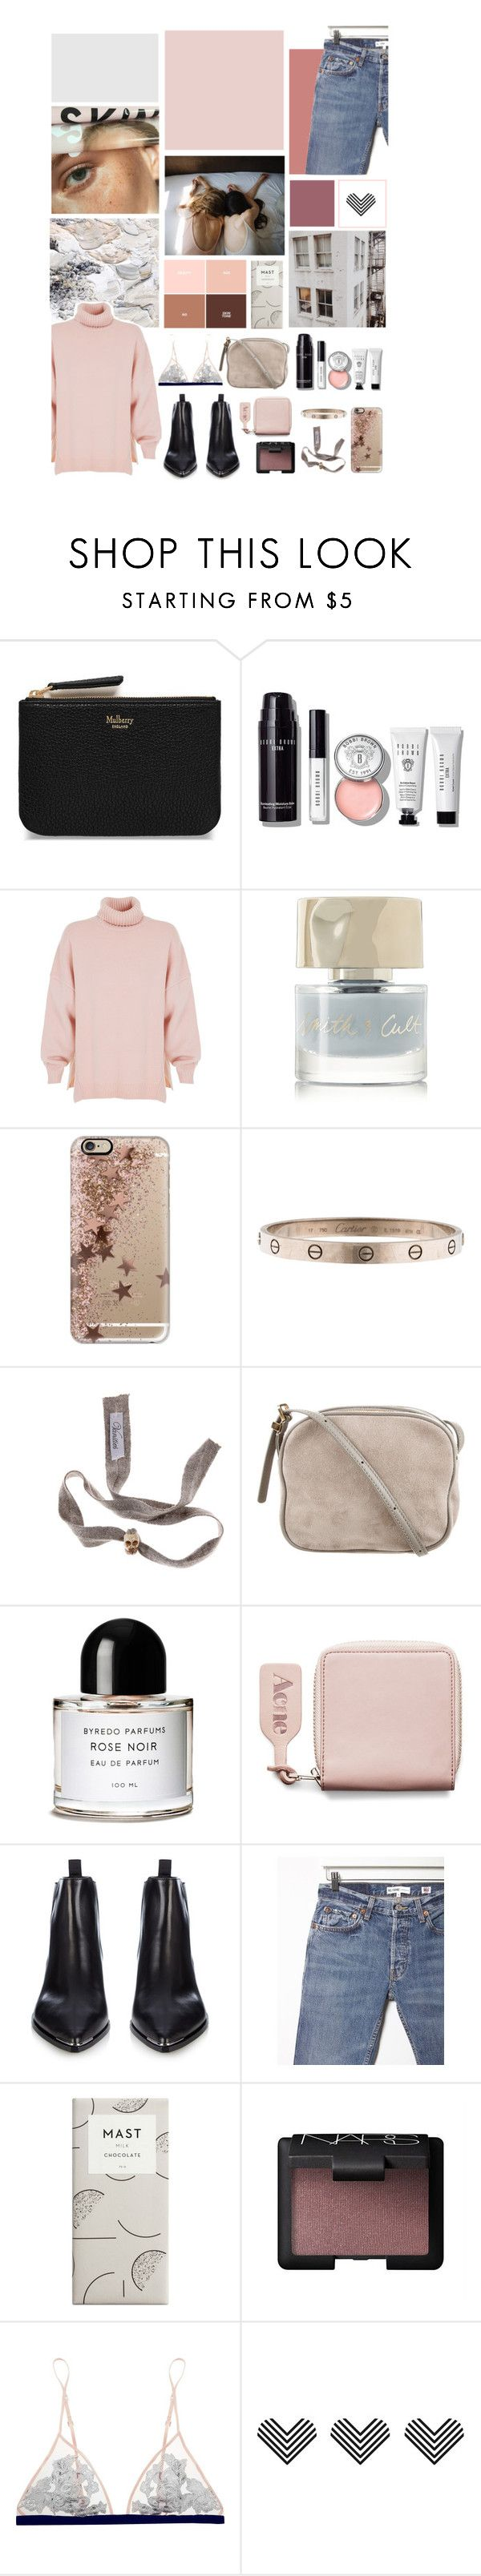 """glossier girls"" by wheretheoceanstood ❤ liked on Polyvore featuring Mulberry, Bobbi Brown Cosmetics, TIBI, Smith & Cult, Casetify, Cartier, The Row, Byredo, Acne Studios and RE/DONE"